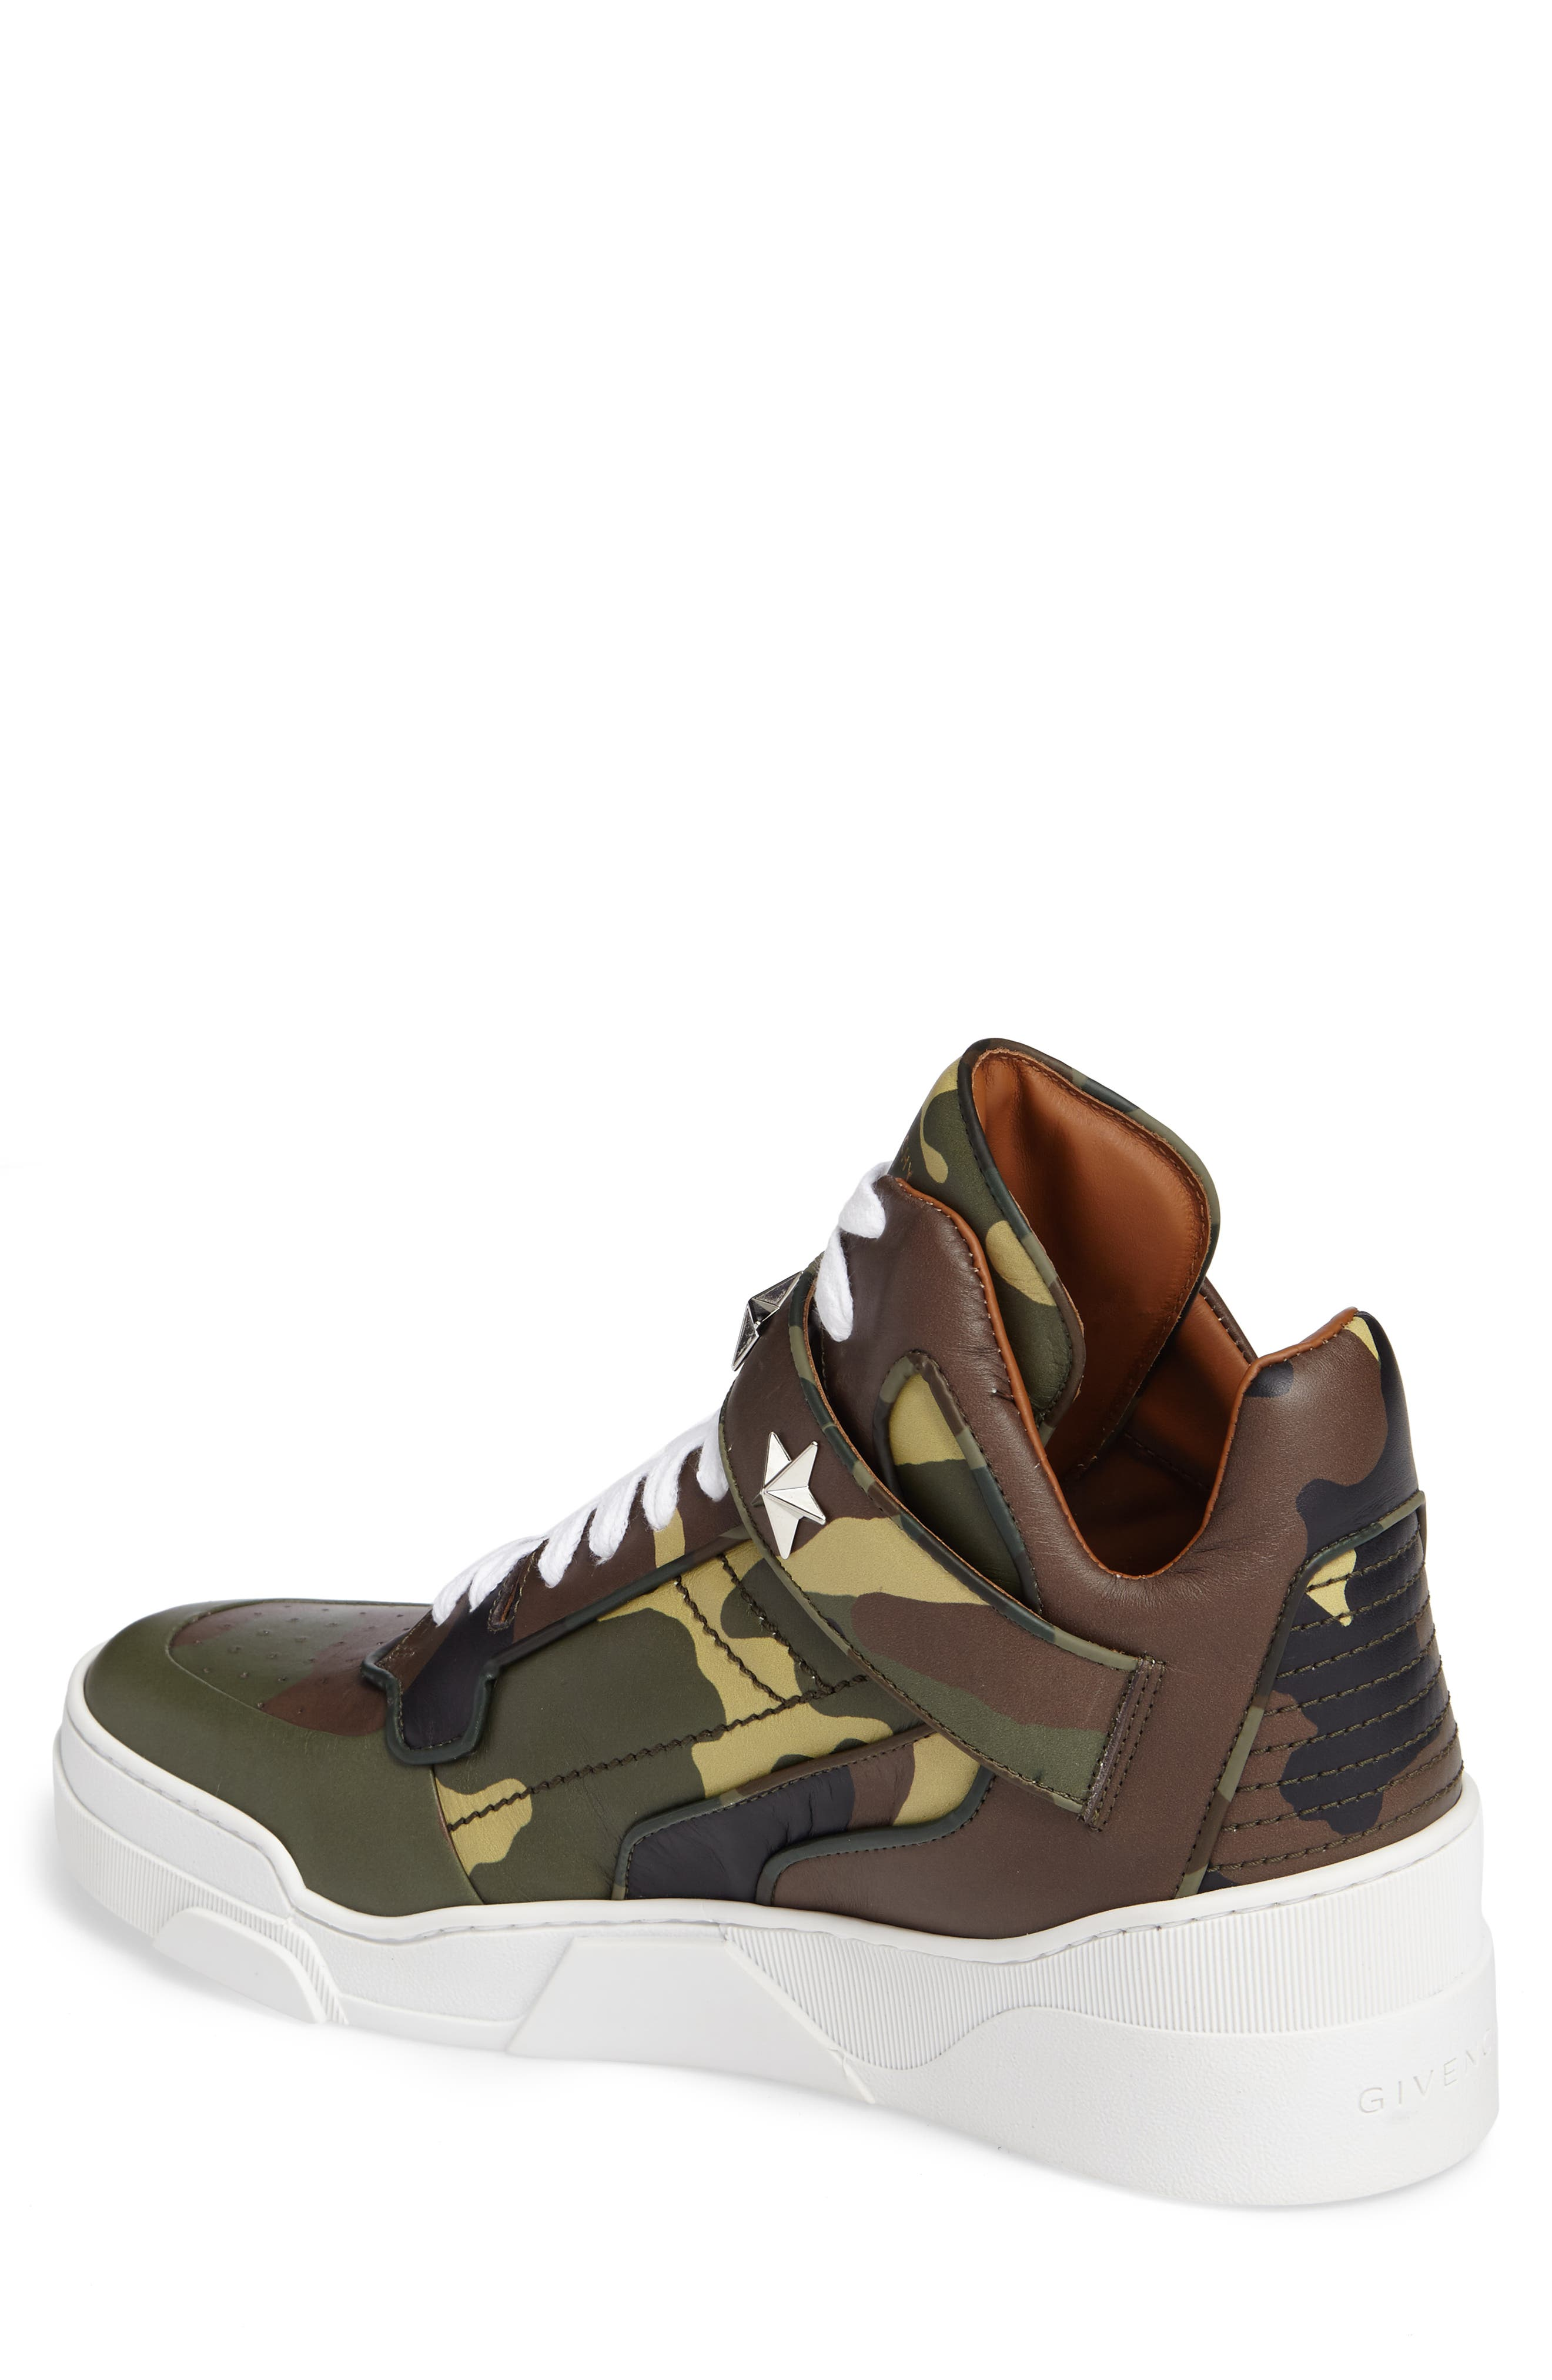 Alternate Image 2  - Givenchy 'Tyson' High Top Sneaker (Men) (Nordstrom Exclusive)